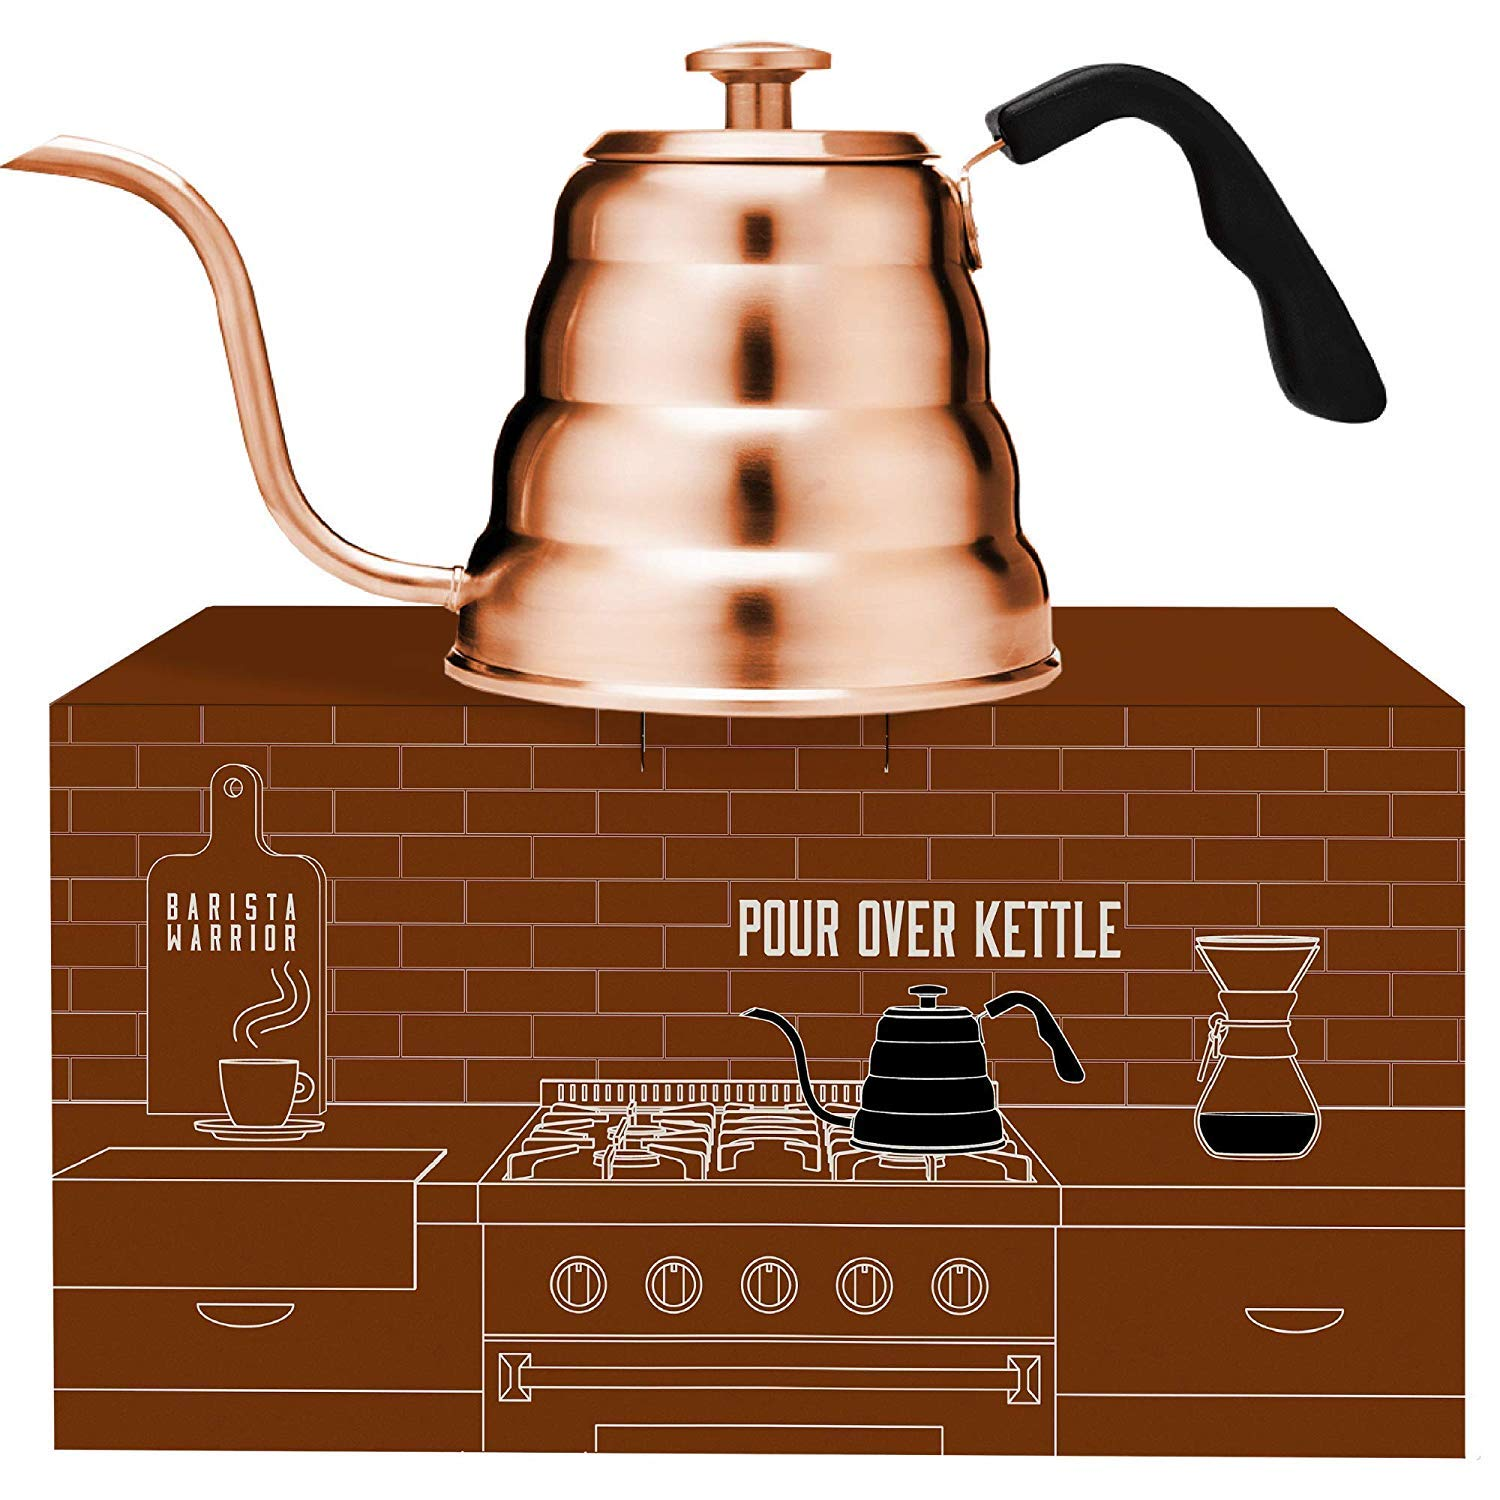 Copper Kettle with Thermometer for Exact Temperature - Copper Coated Gooseneck Pour Over Kettle for Coffee and Tea (1.2 Liter | 40 fl oz) (Copper Coated Stainless Steel) by Barista Warrior